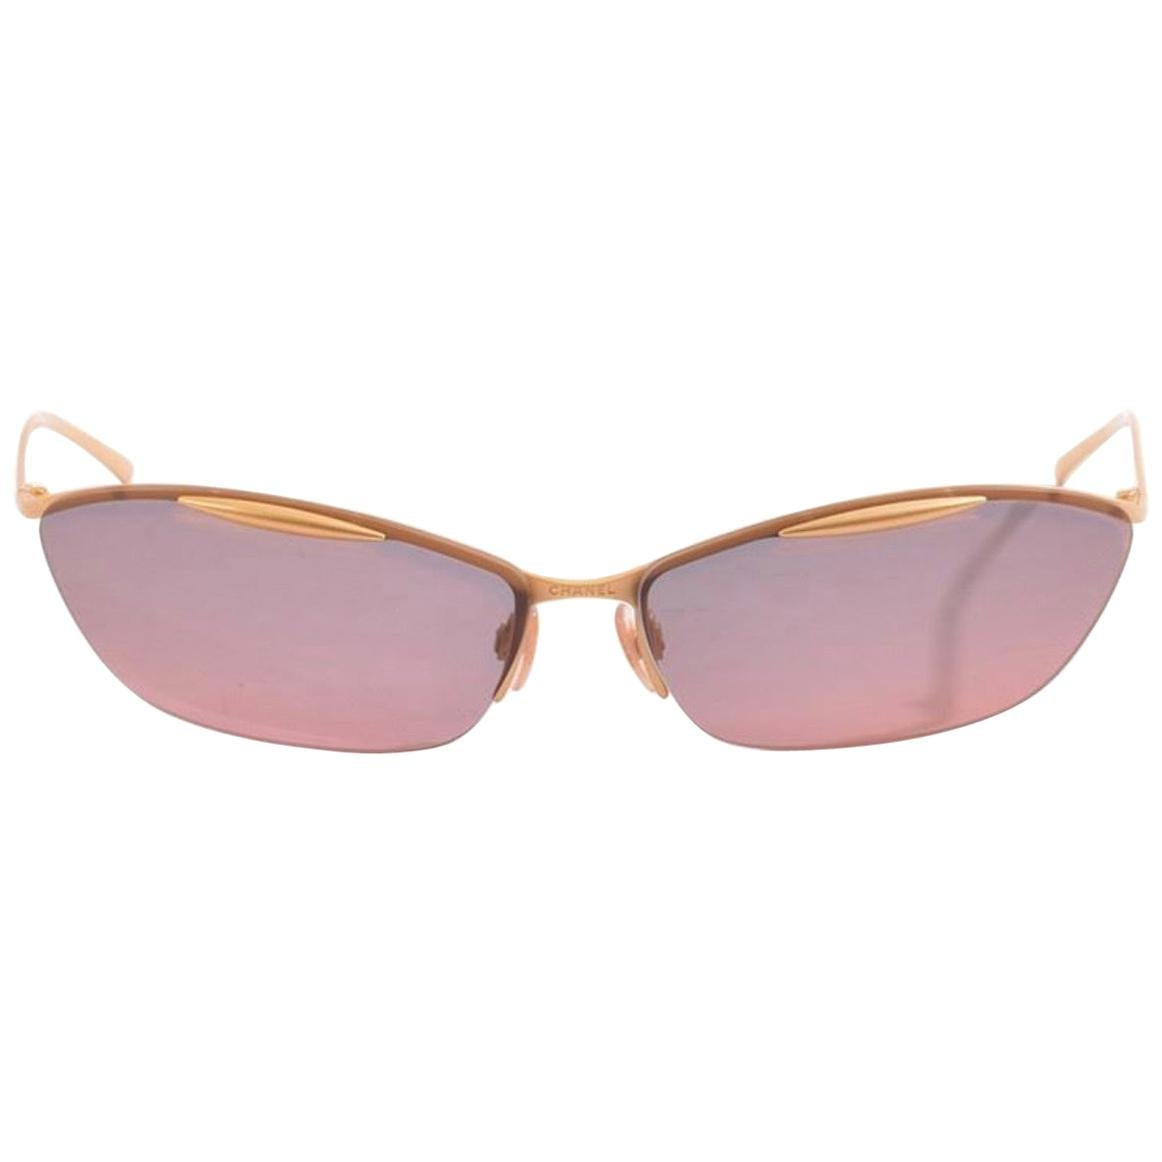 Chanel Pink Ombre Tinted Gold Rimless Kylie Sunglasses